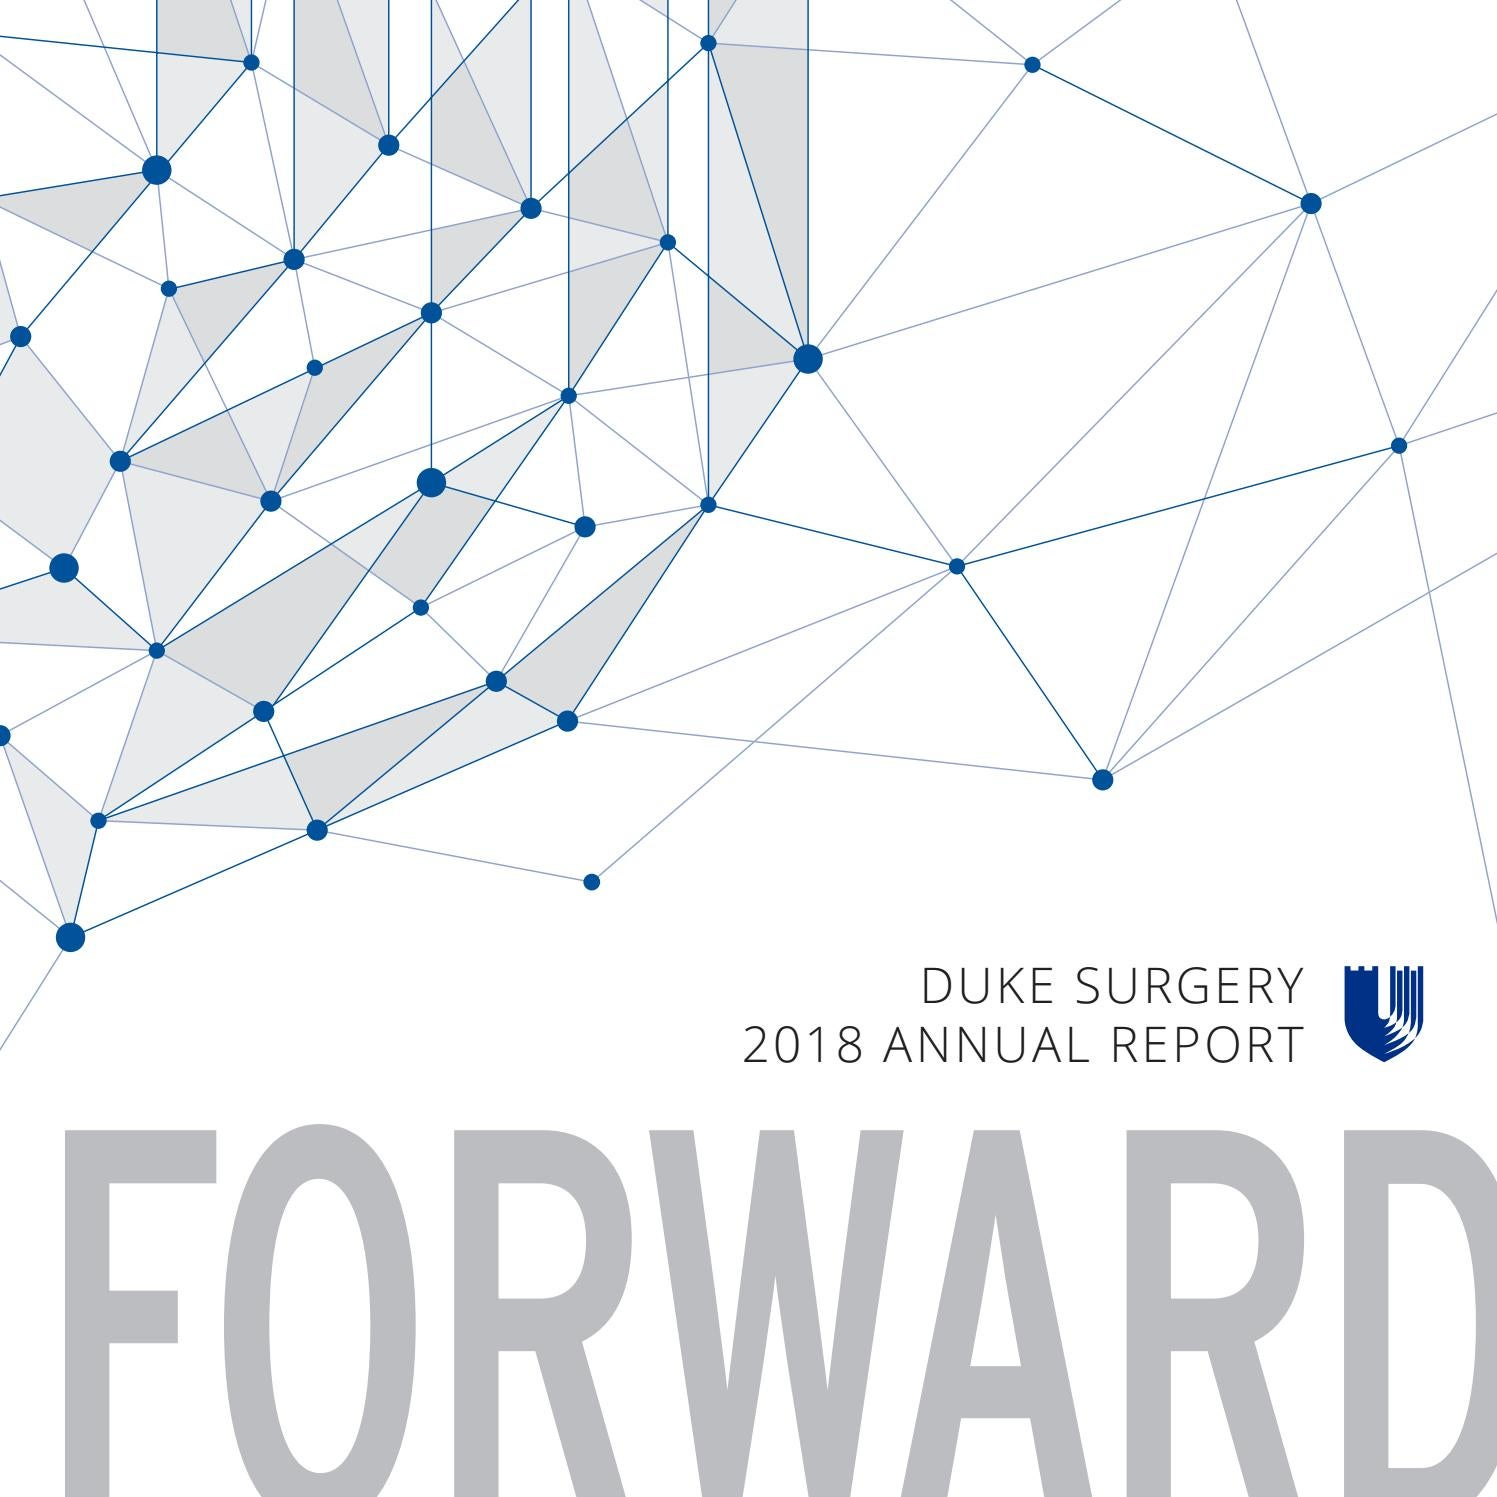 Duke Surgery - 2018 Annual Report by Duke Surgery - issuu